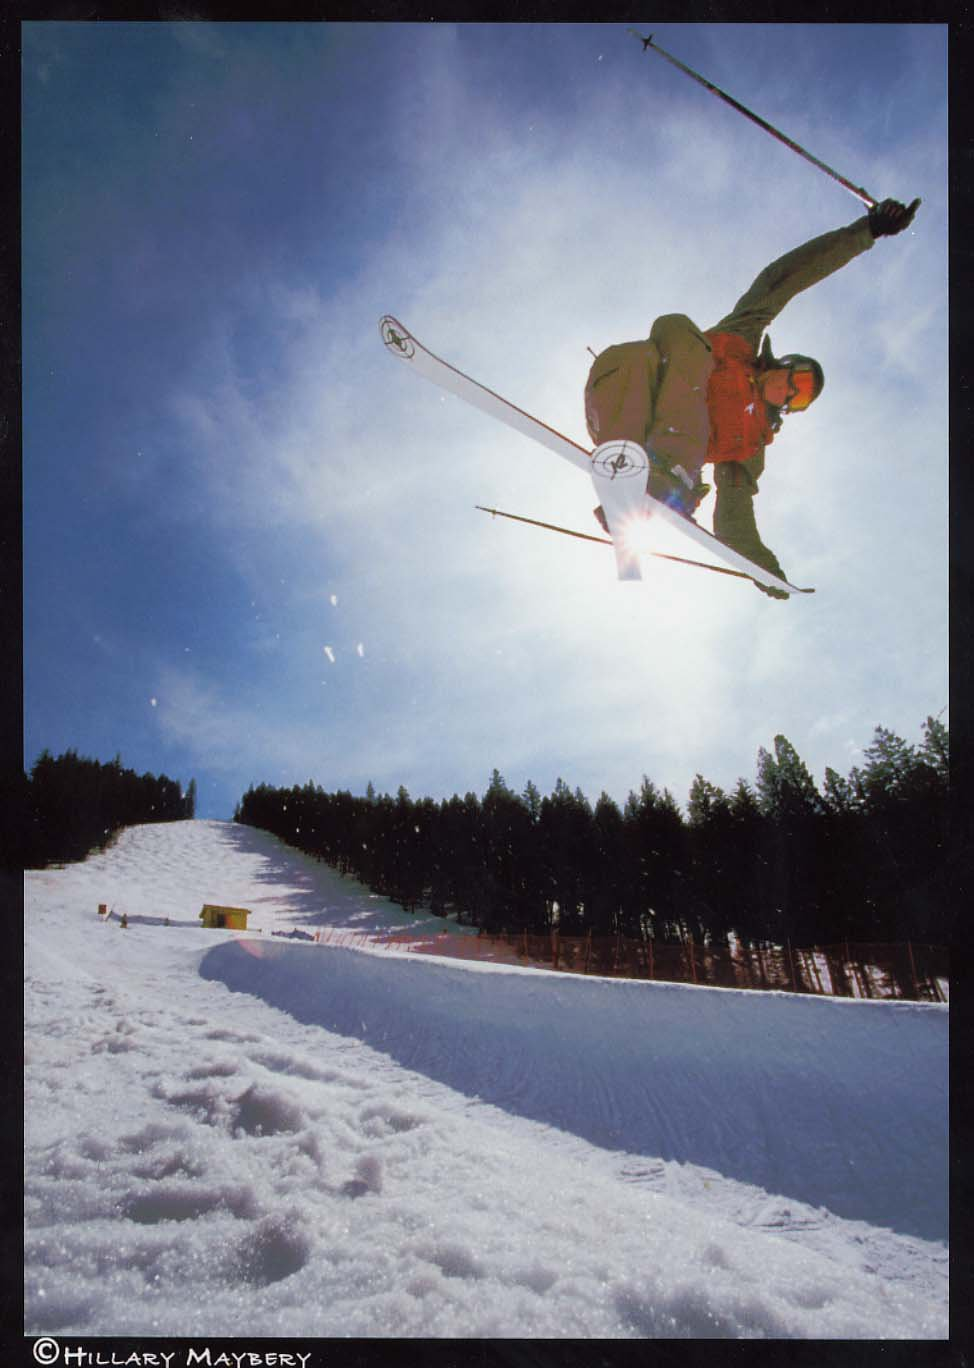 Veddy sexy pic of a tweaked tail grab, K2 anyone?....